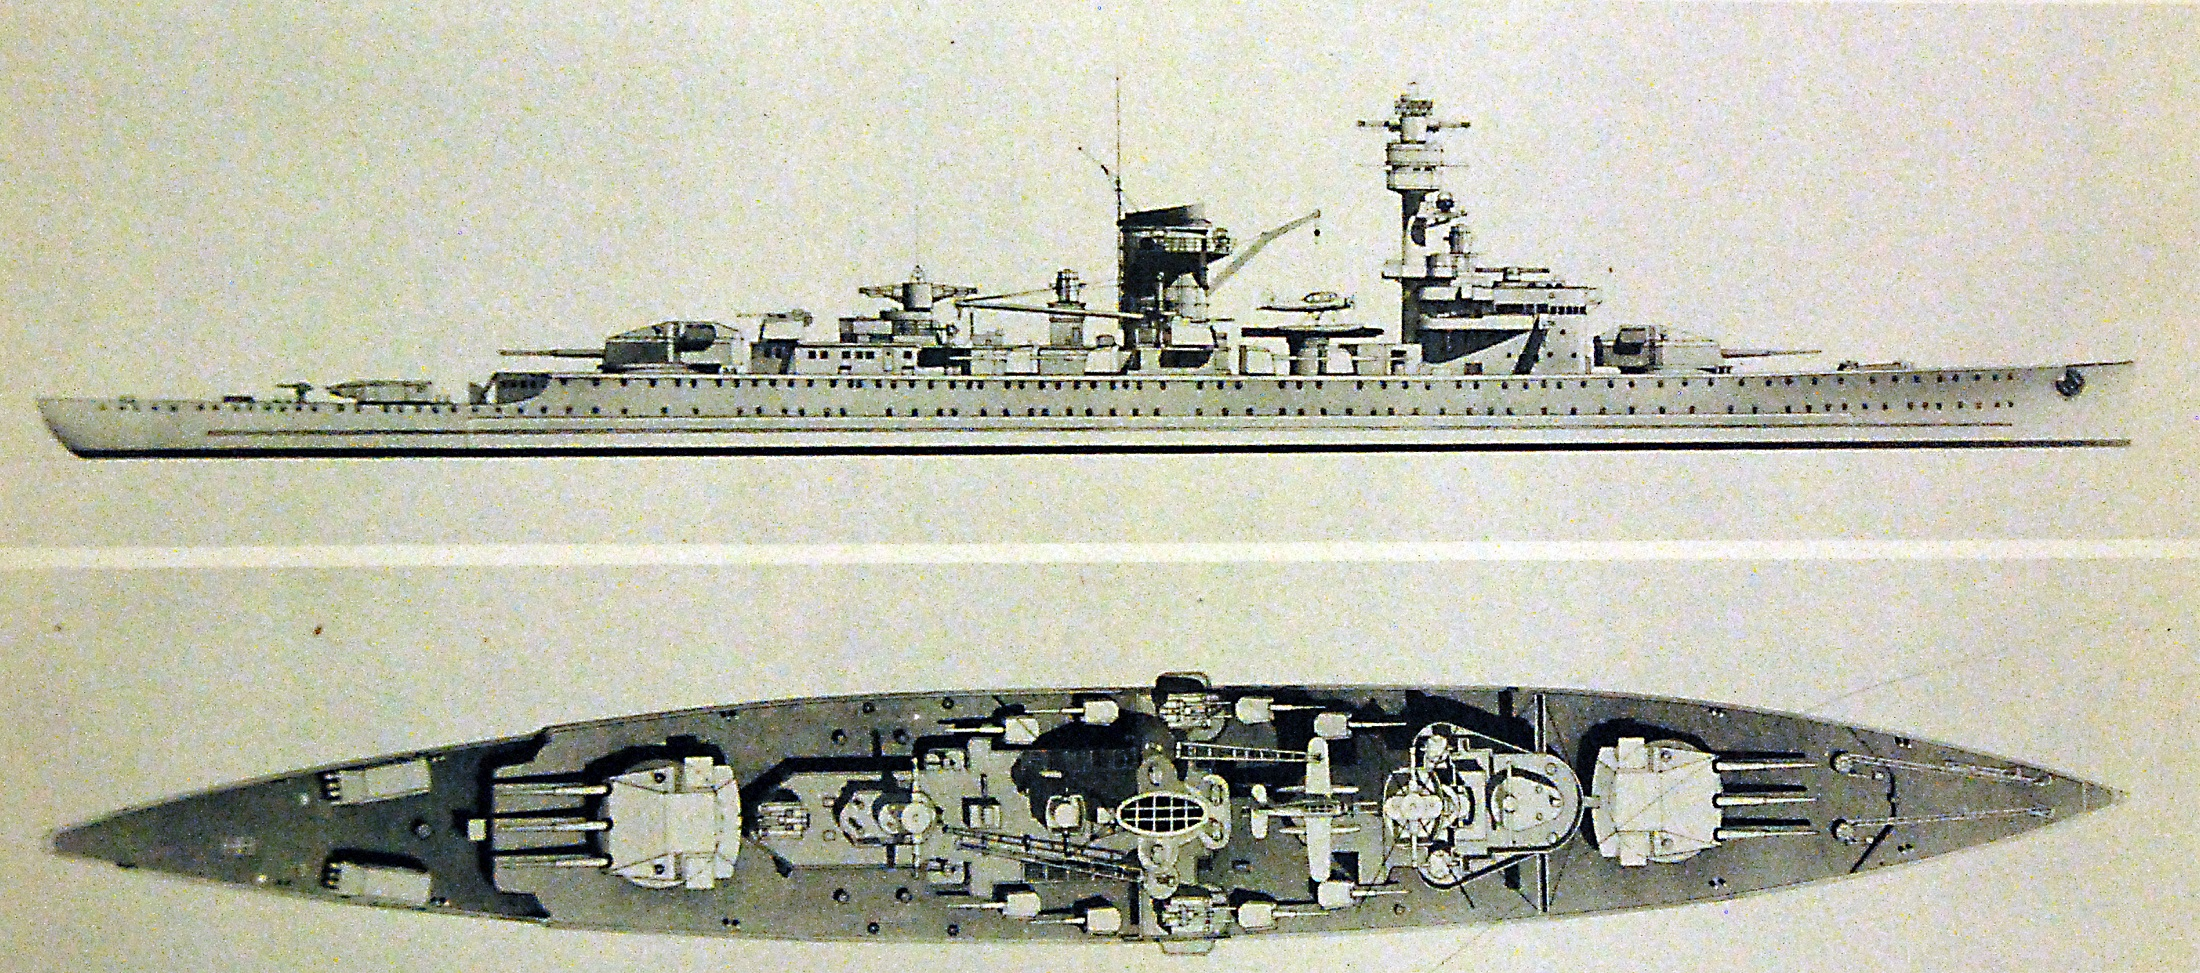 How a Nazi Battleship Captain Was Tricked Into Sinking His Own Warship